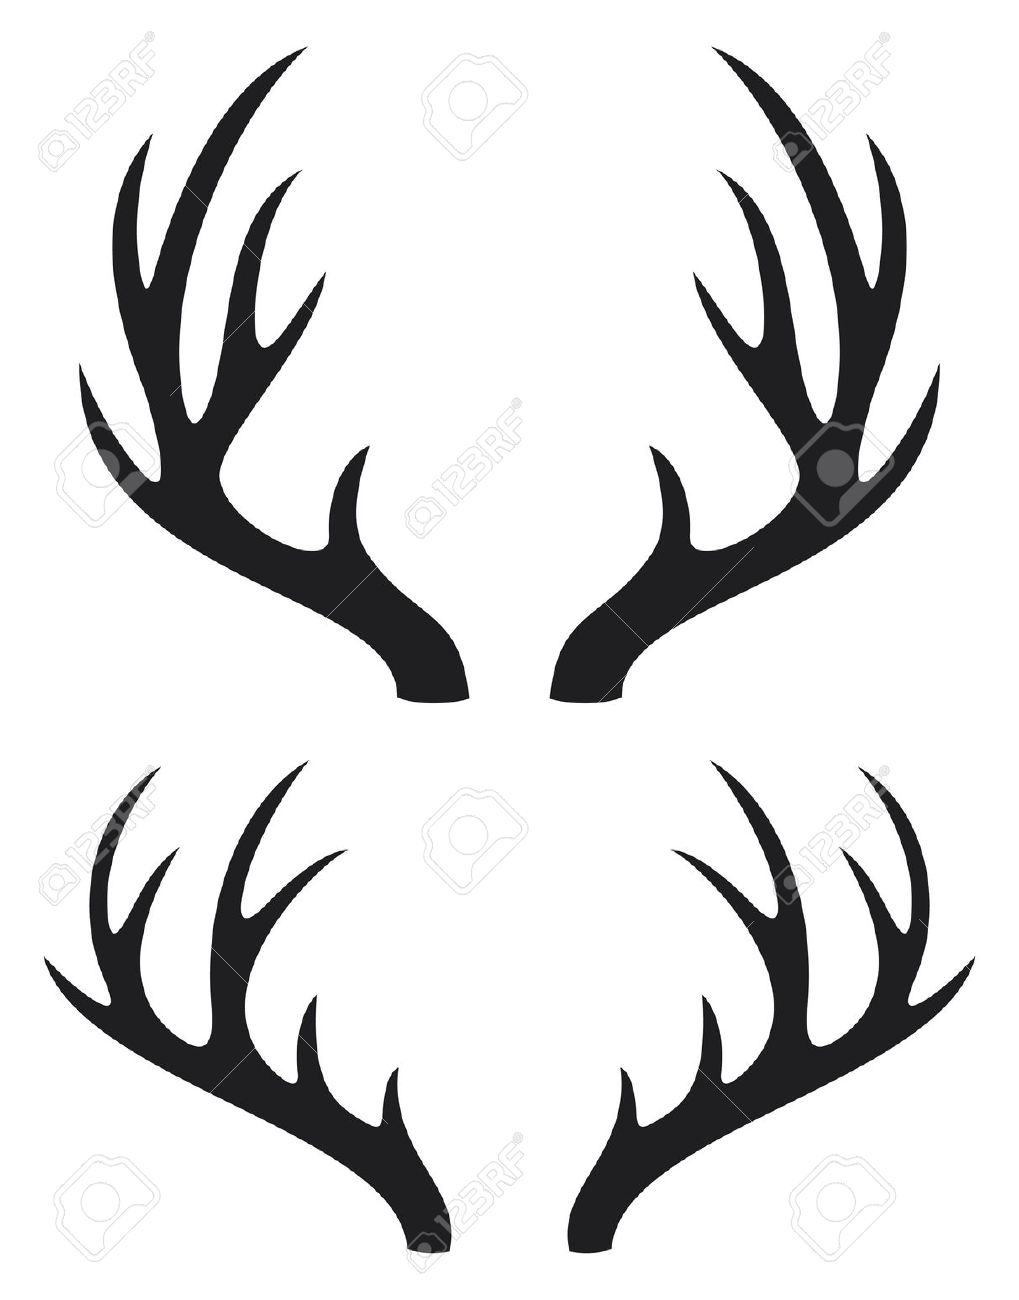 Antlers clipart single. Antler silhouette at getdrawings